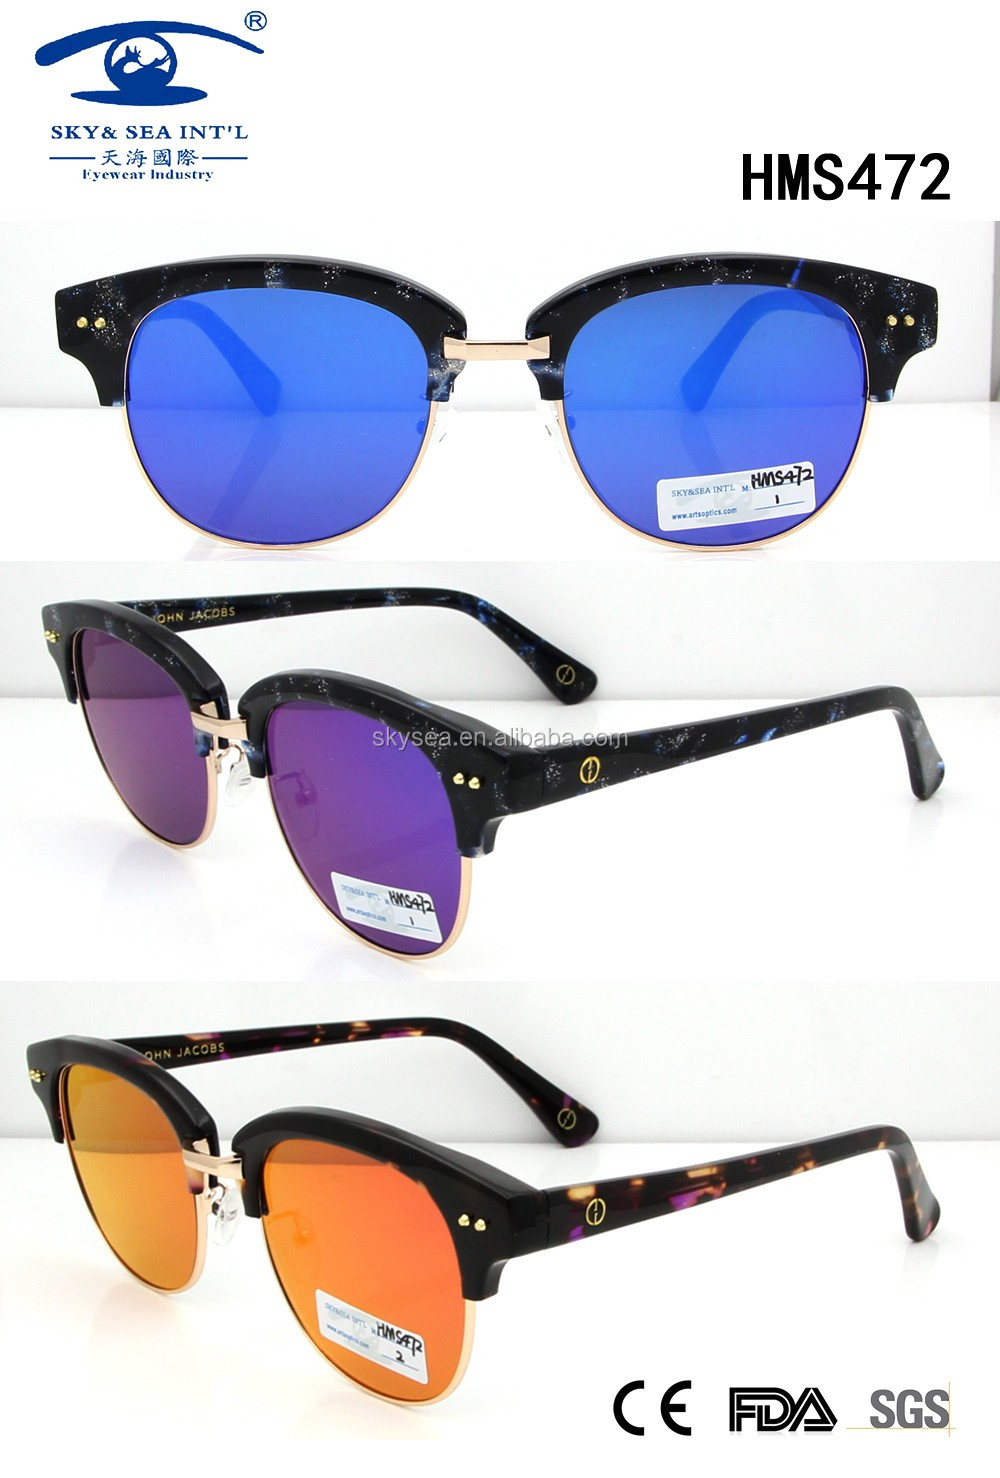 2016 colorful new arrival fashion acetate sunglasses